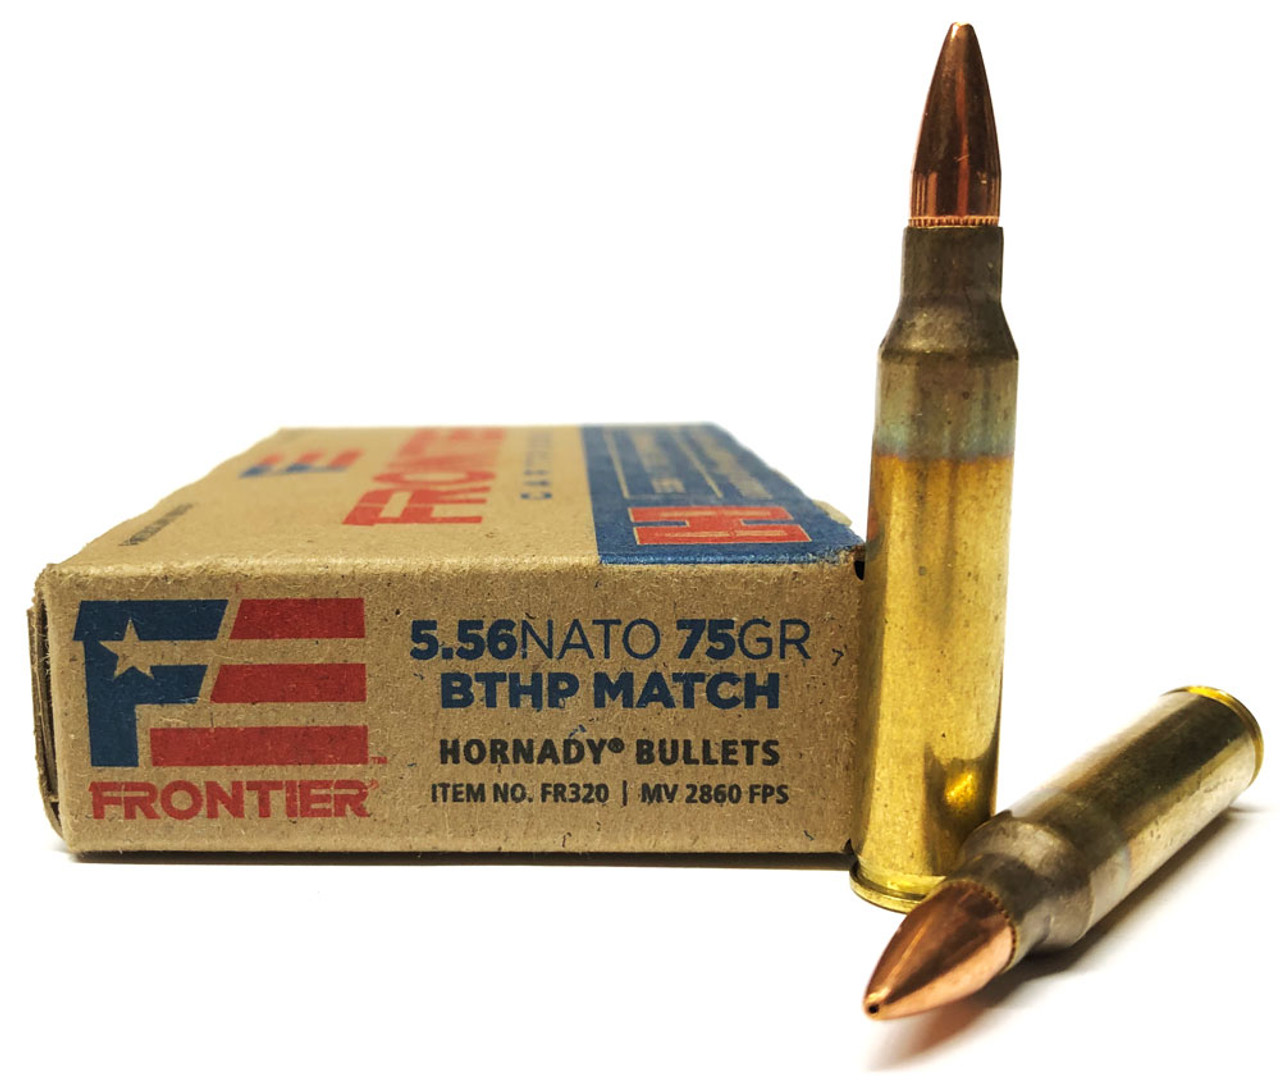 5 56 75 Grain BTHP Match T2 FRONTIER with Hornady Bullets - 20 Rounds